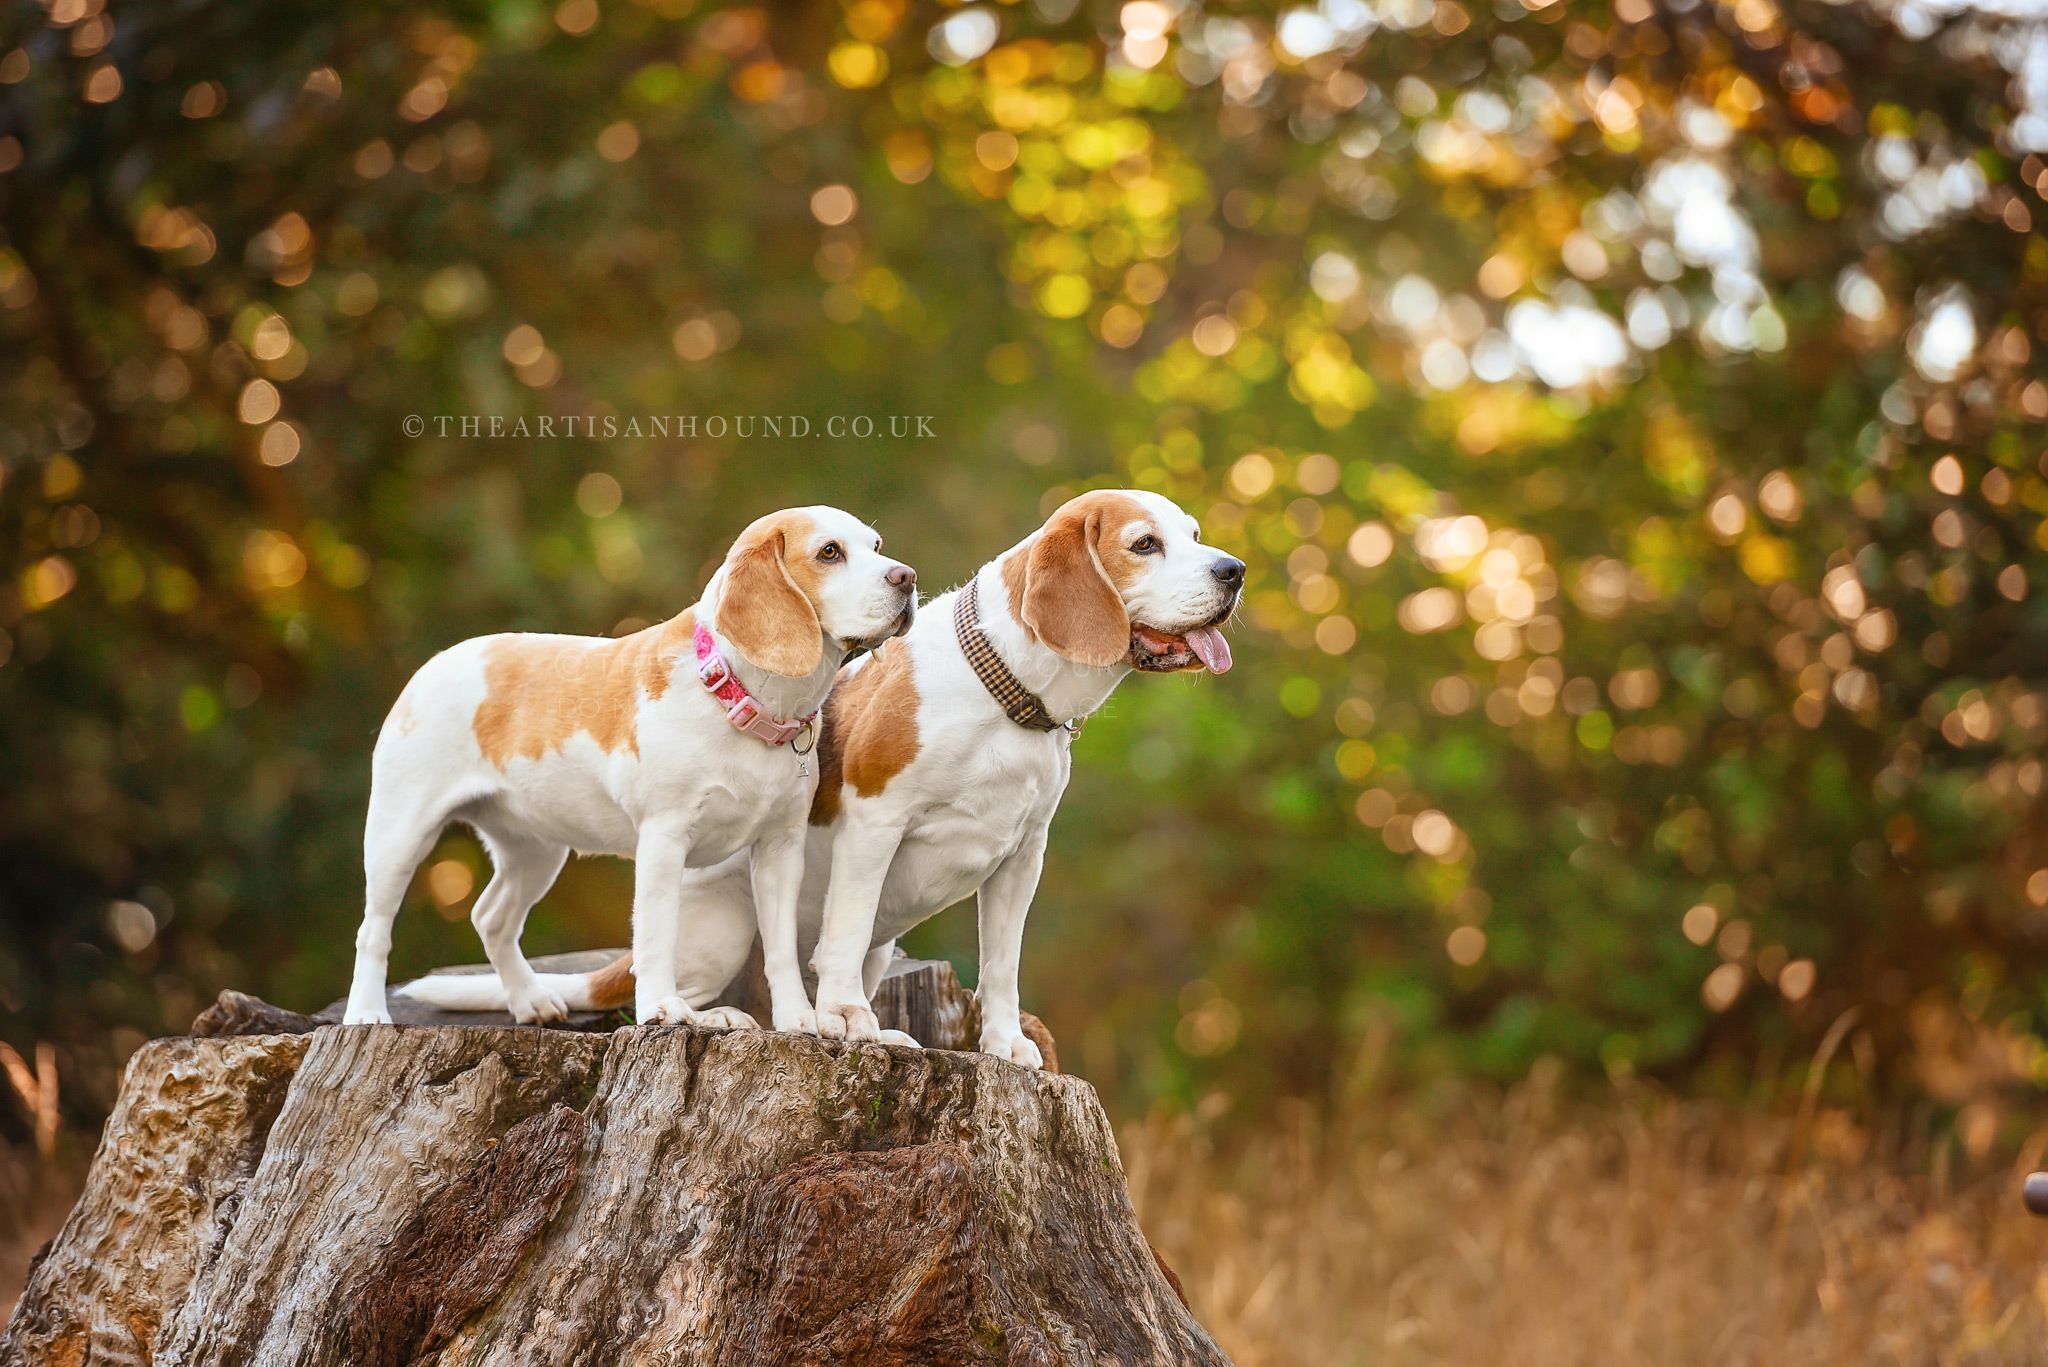 Two-Beagles-standing-on-tree-stump